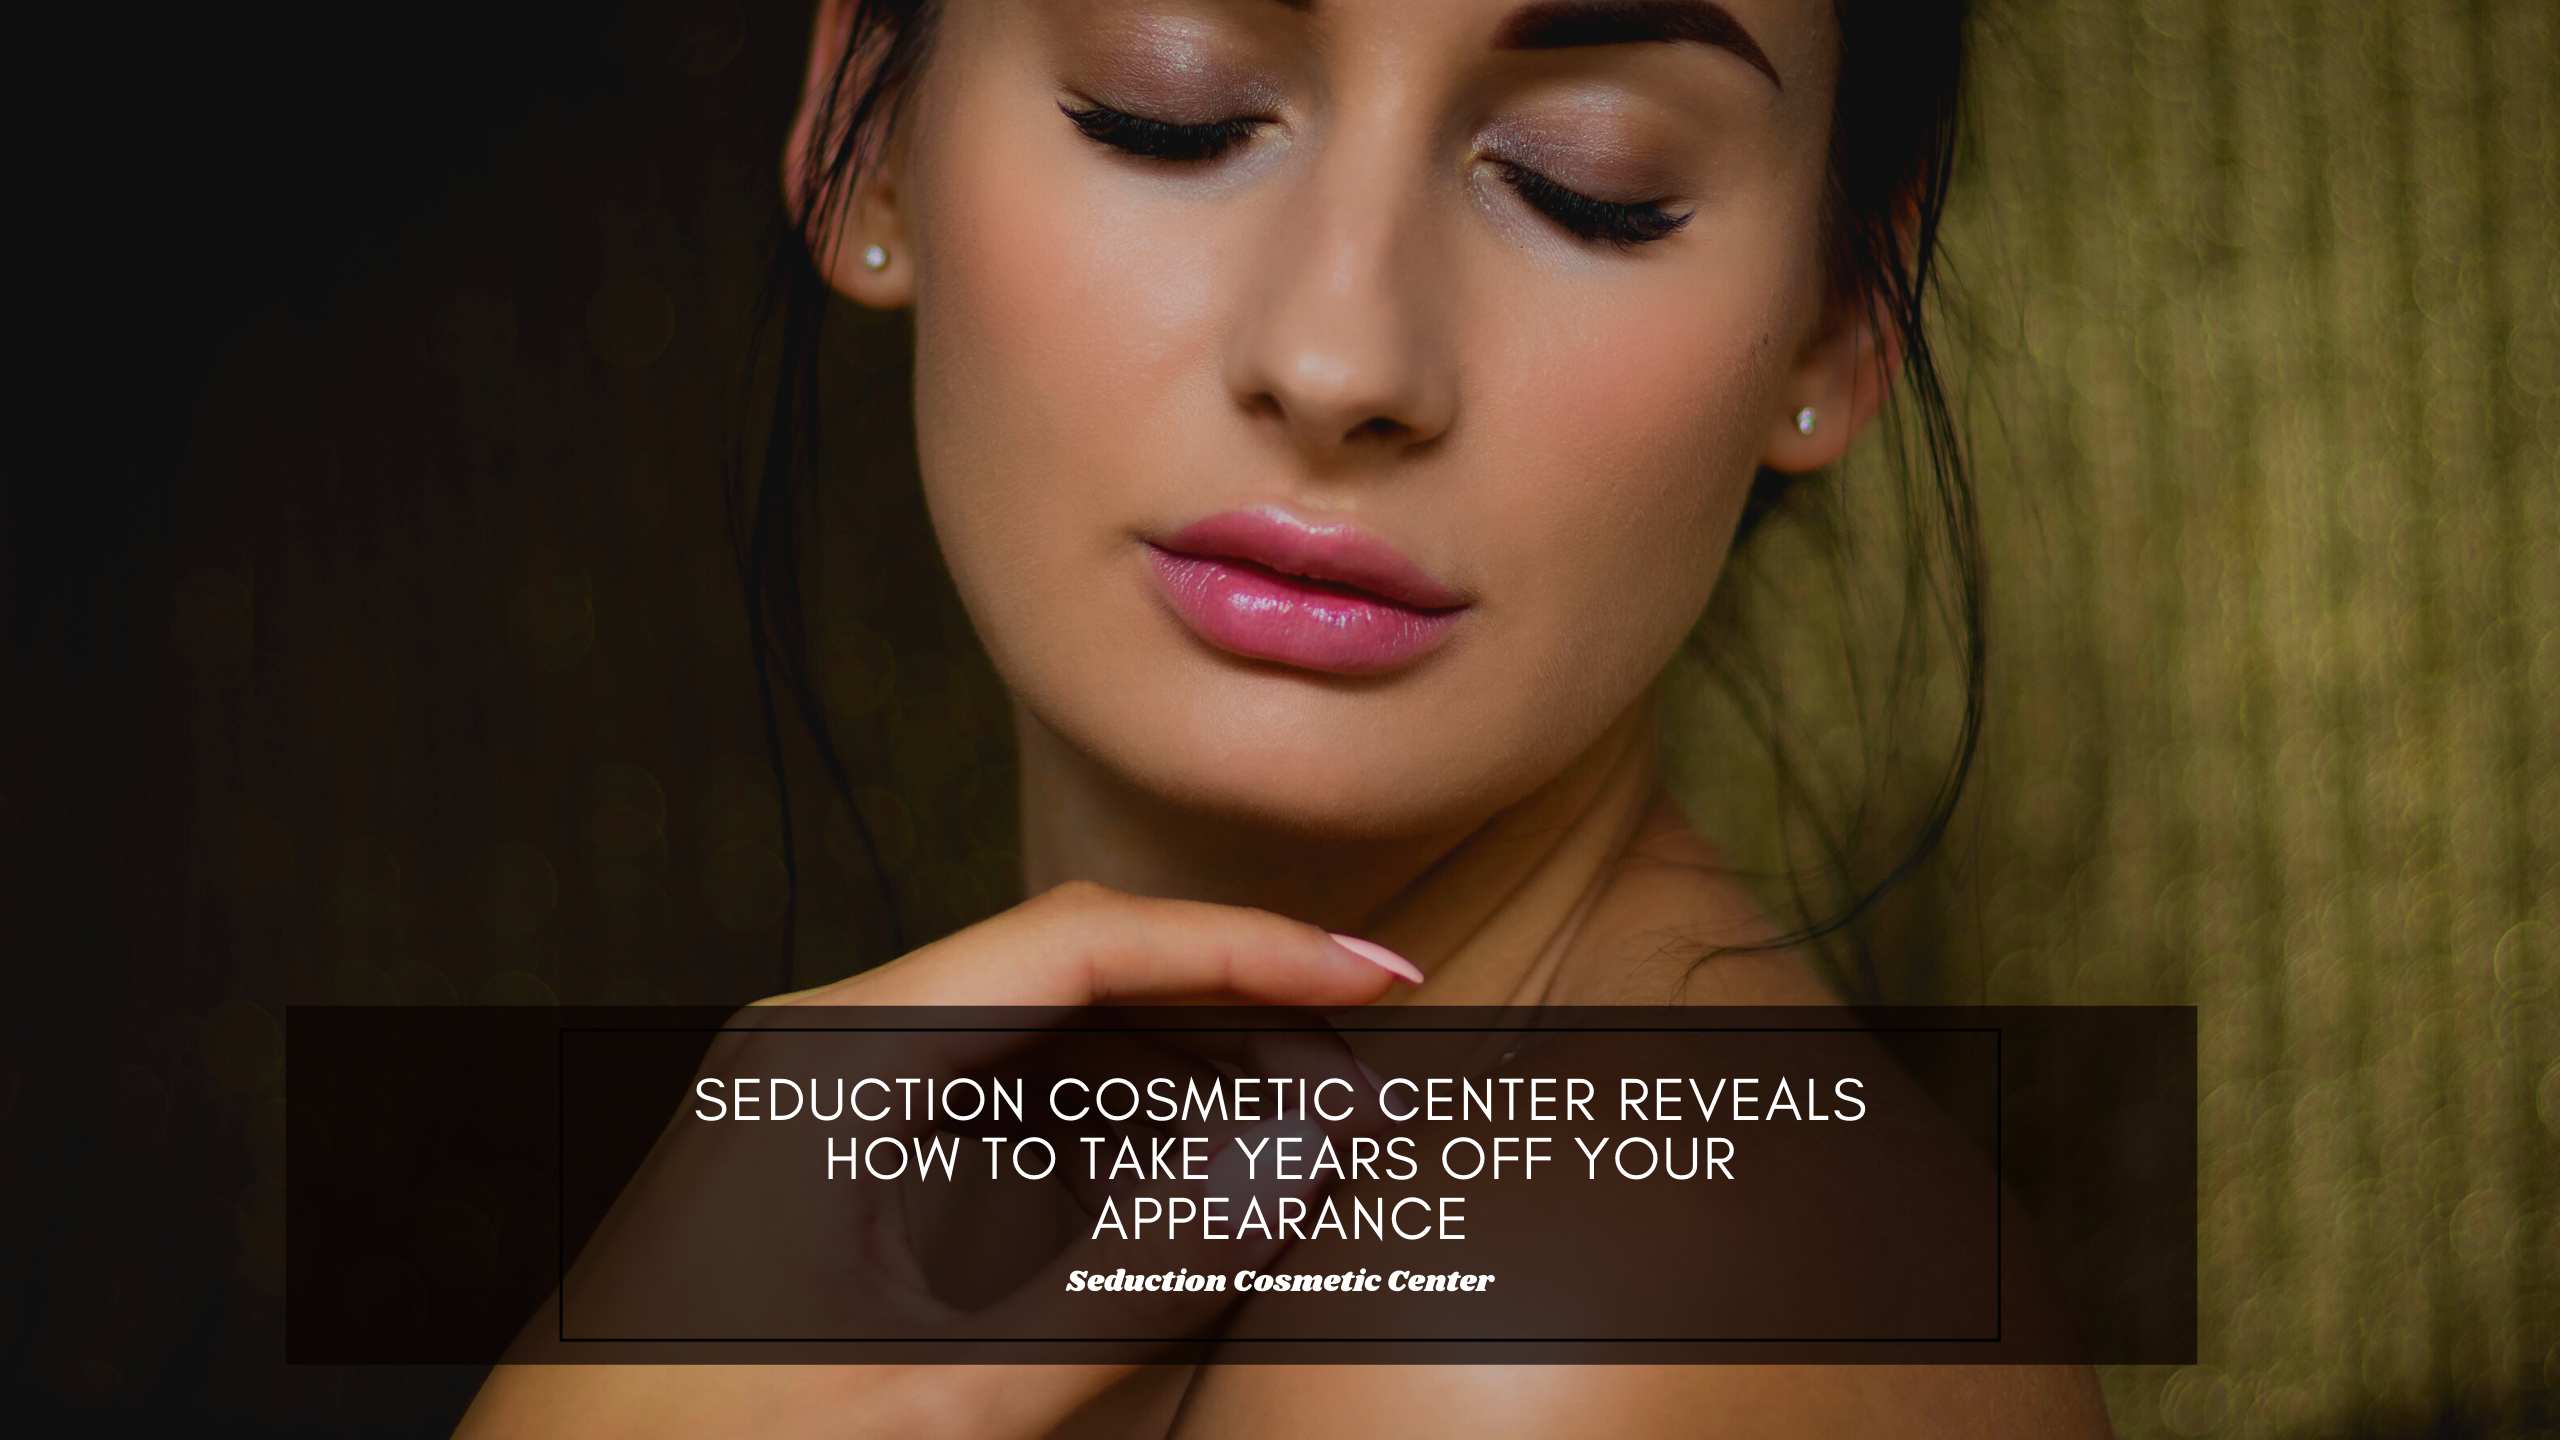 Seduction Cosmetic Center